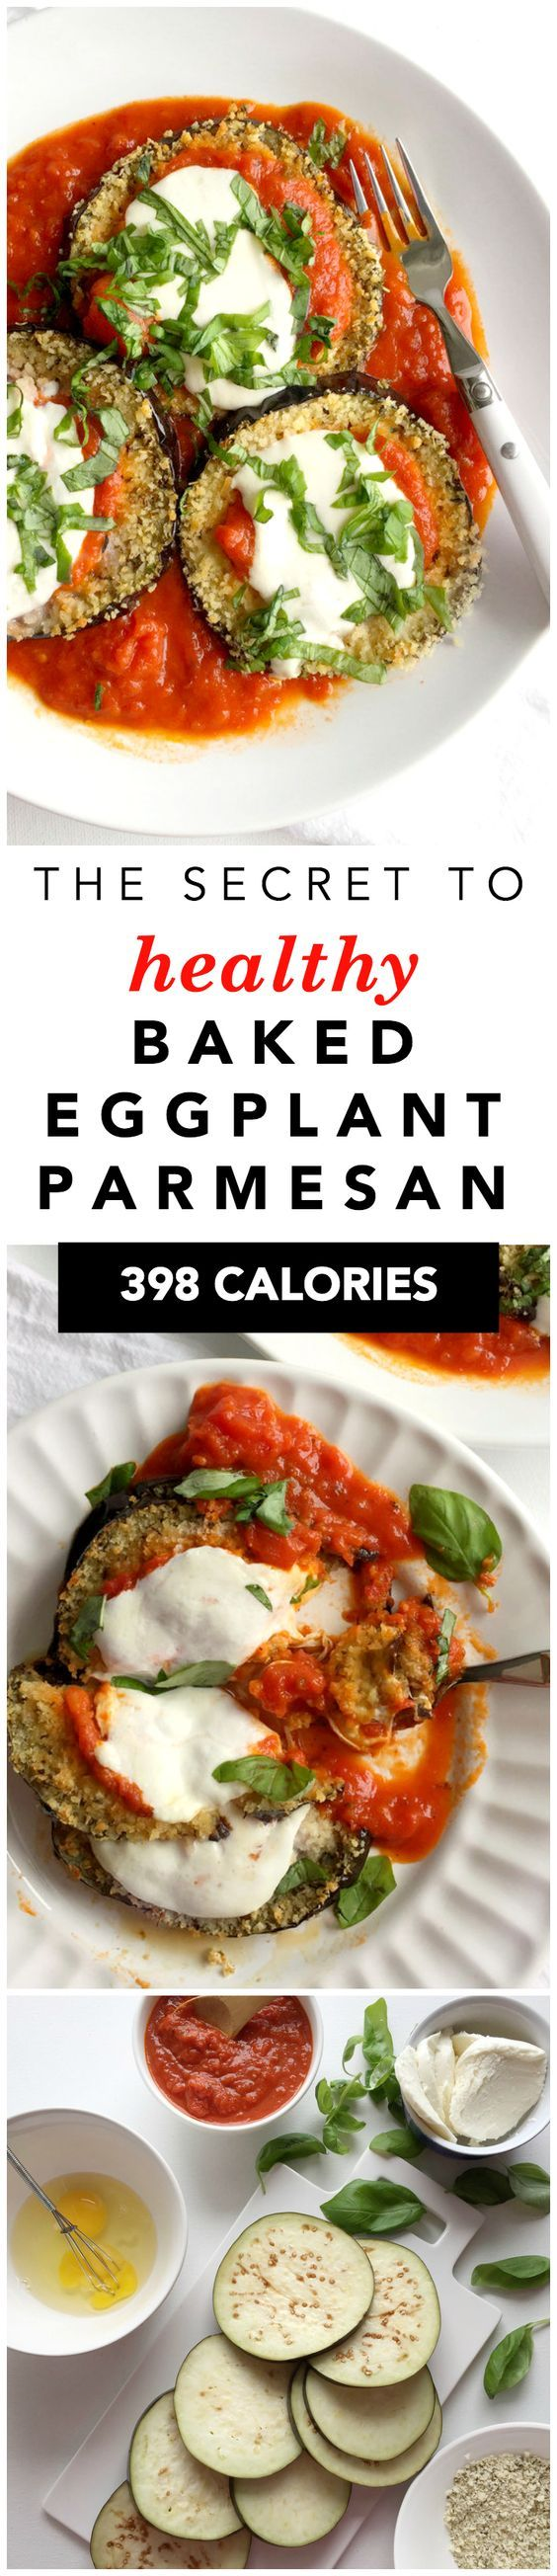 Healthy Baked Eggplant Parmesan Recipe! The Secrets On How To Make Healthy  Baked Eggplant Parmesan